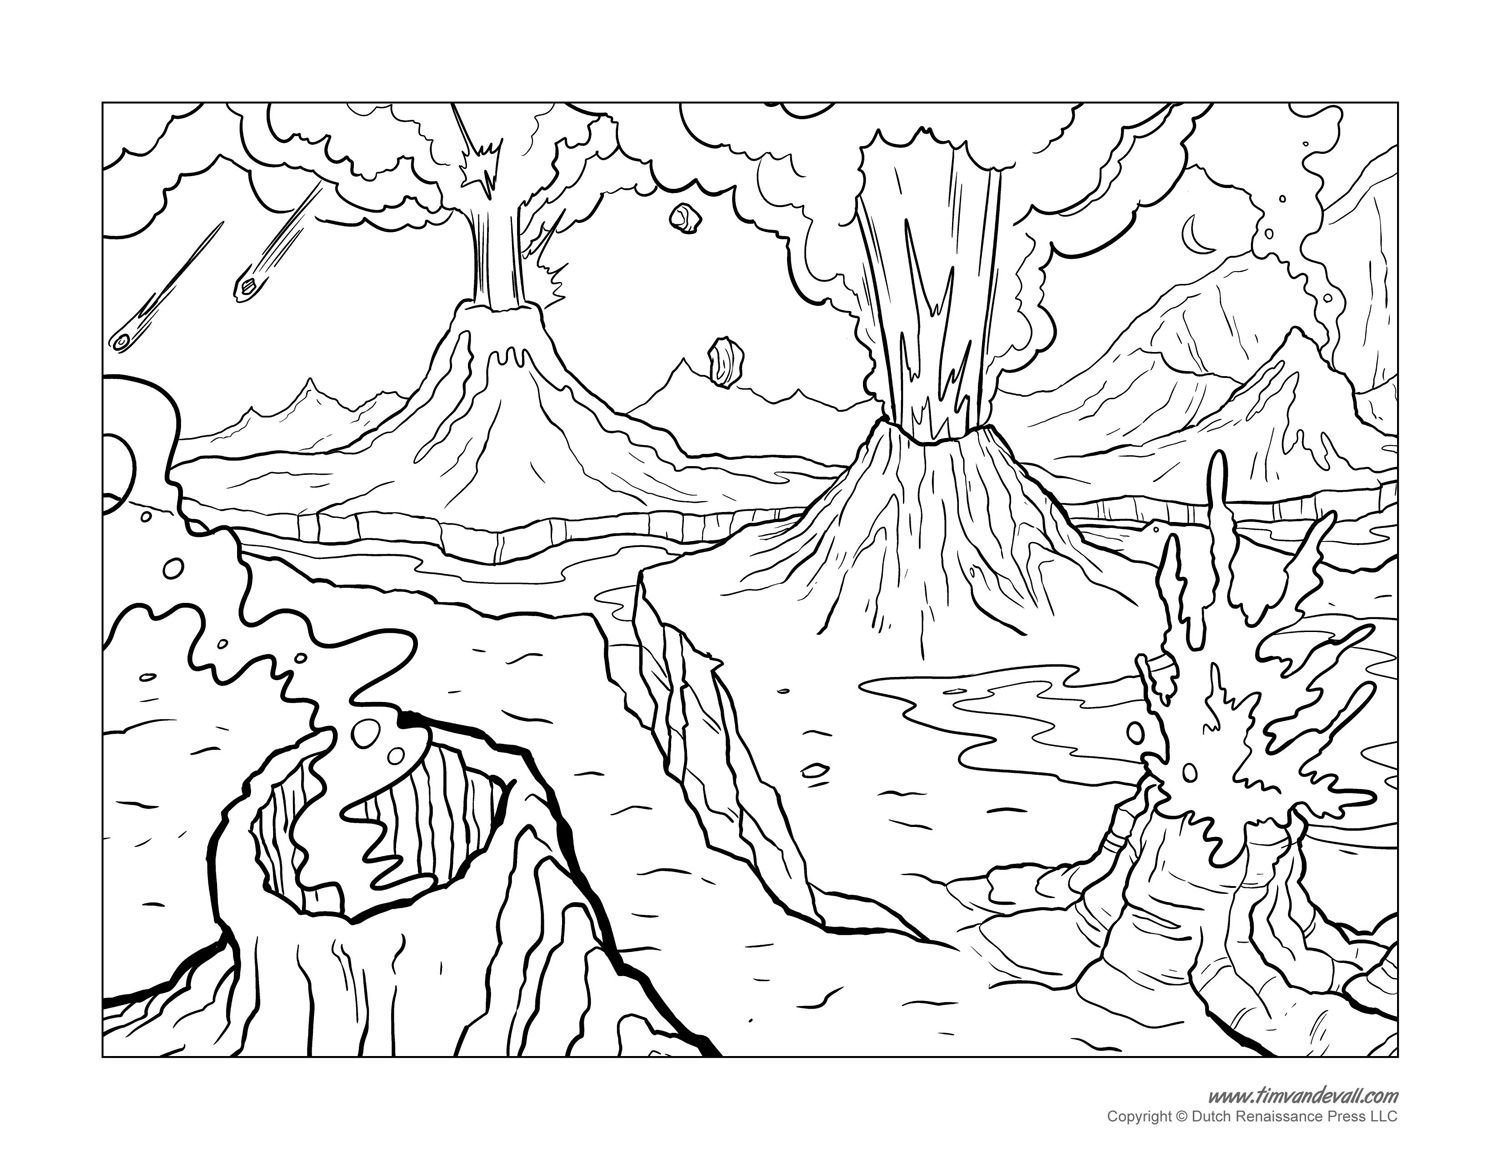 volcano coloring page - Language Arts Coloring Pages